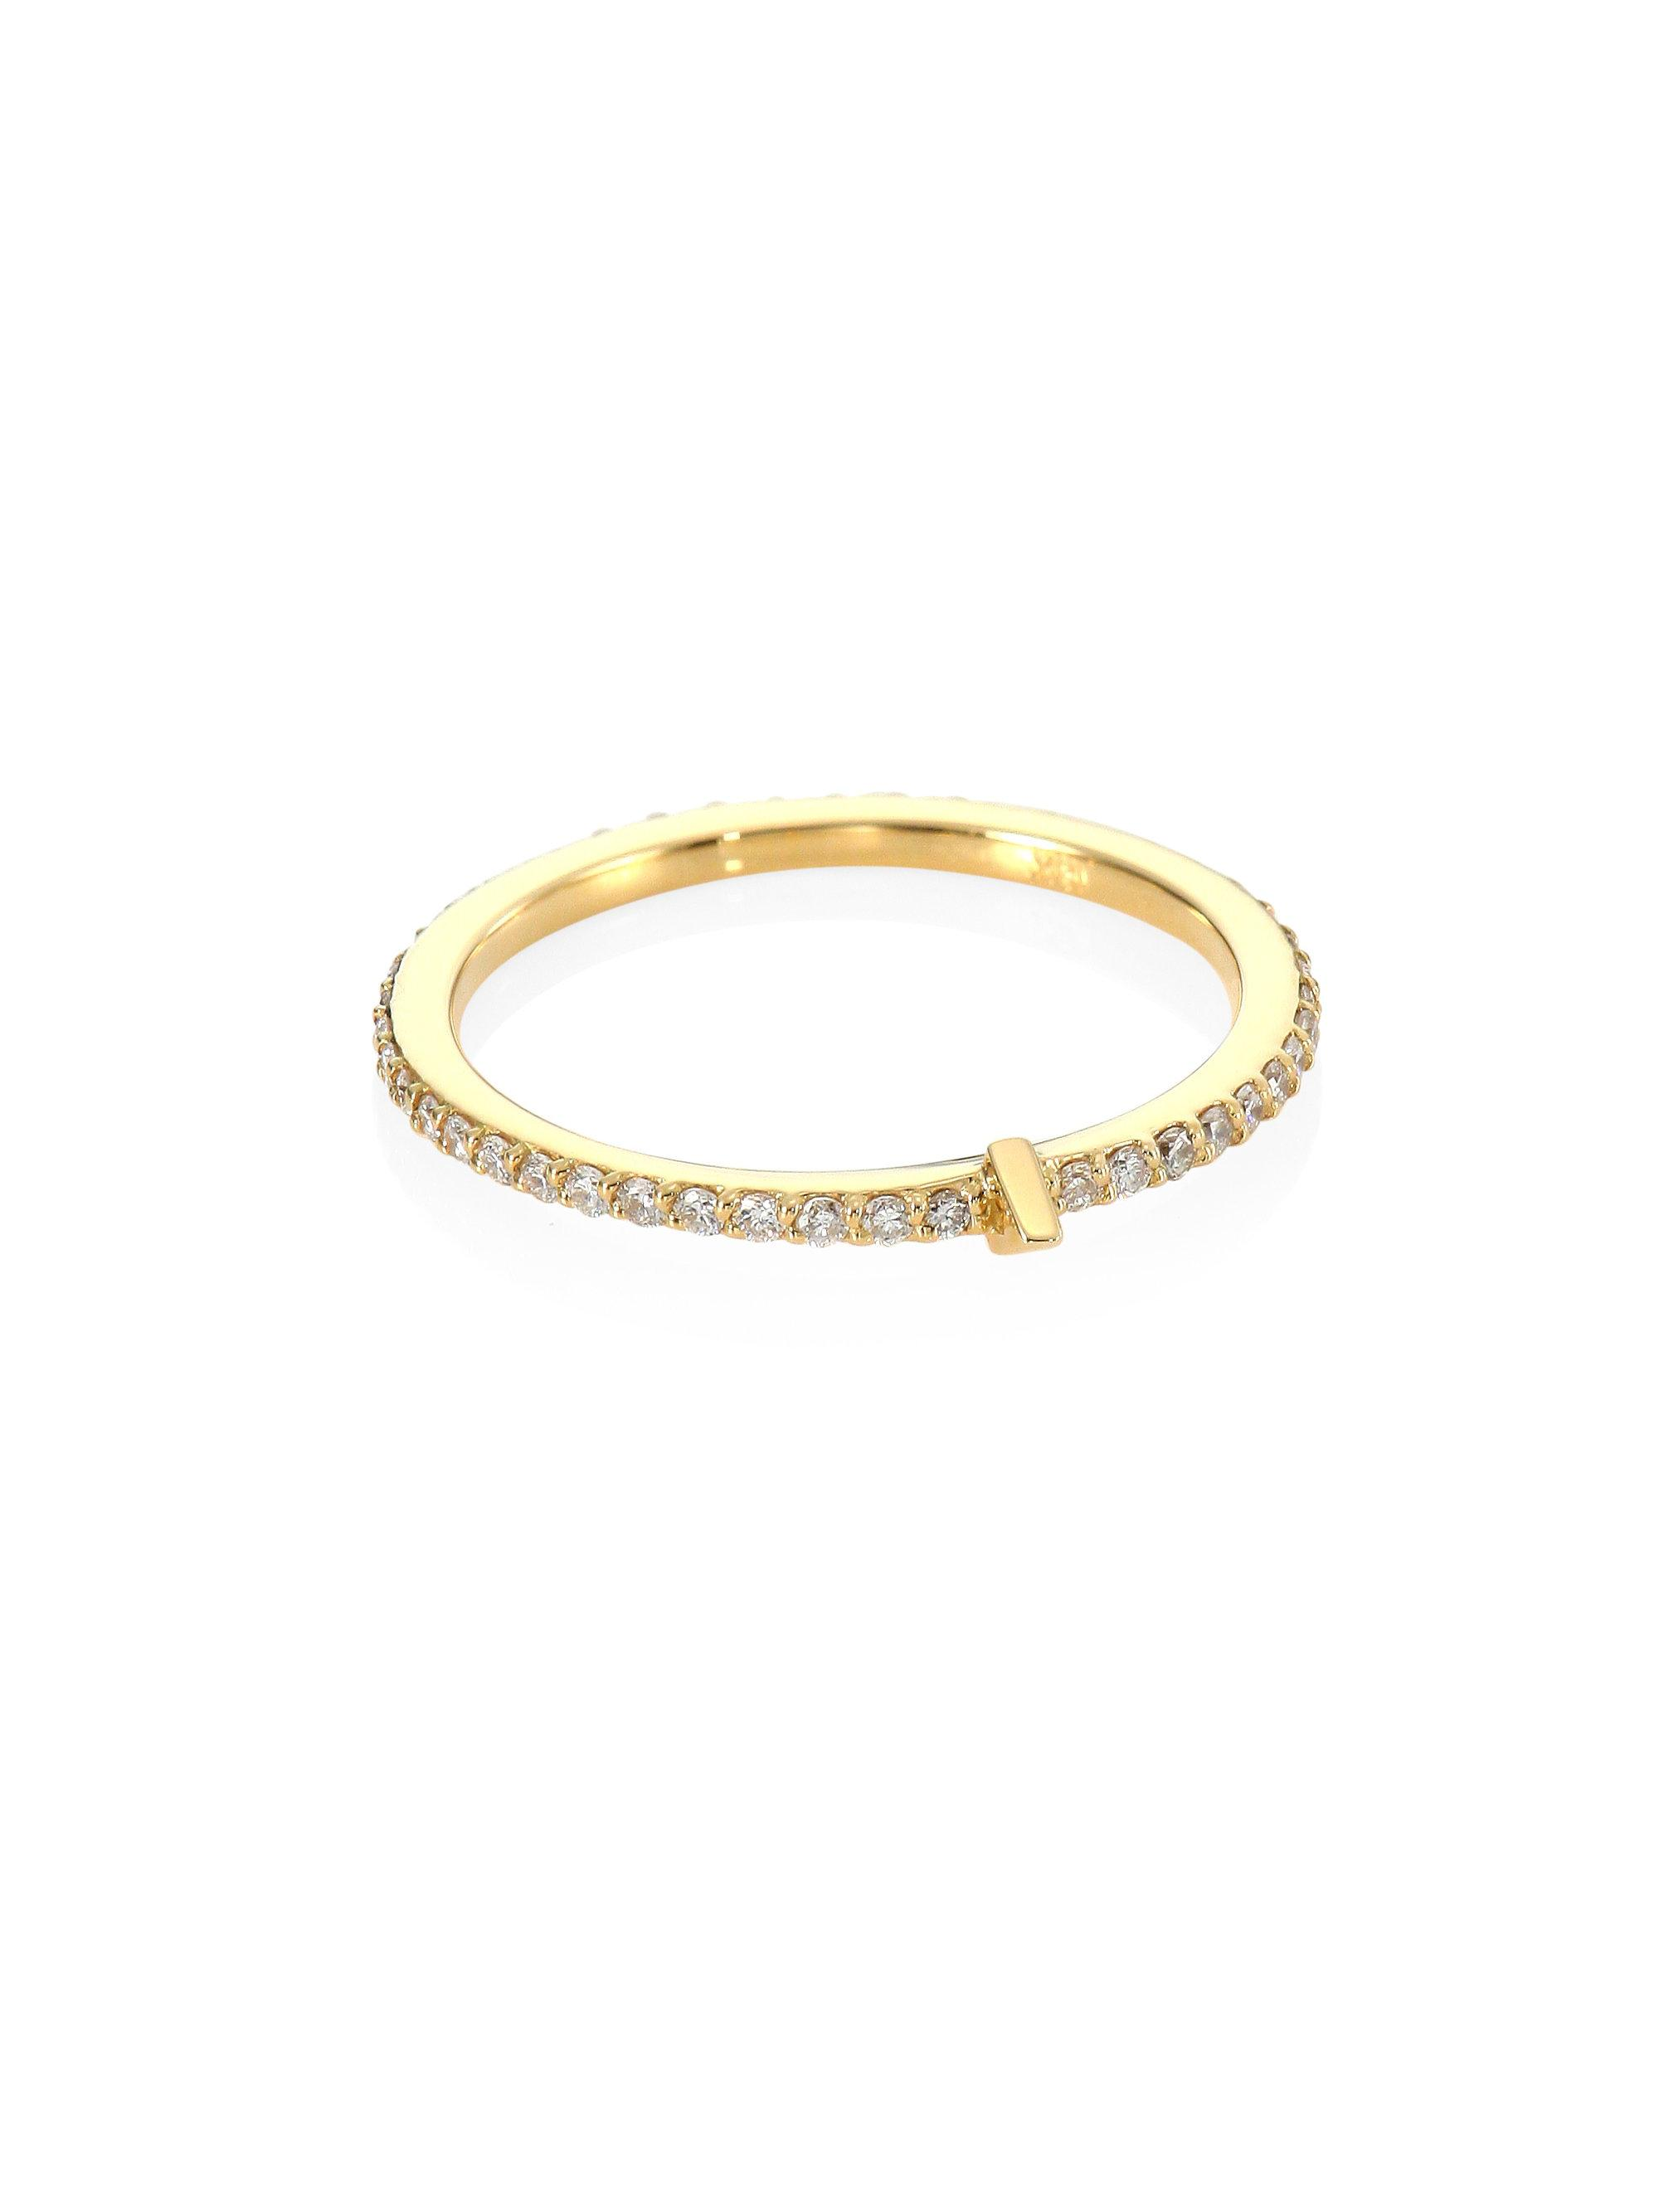 ring my iphone novick tplt amp 18k yellow gold midi ring in 1498